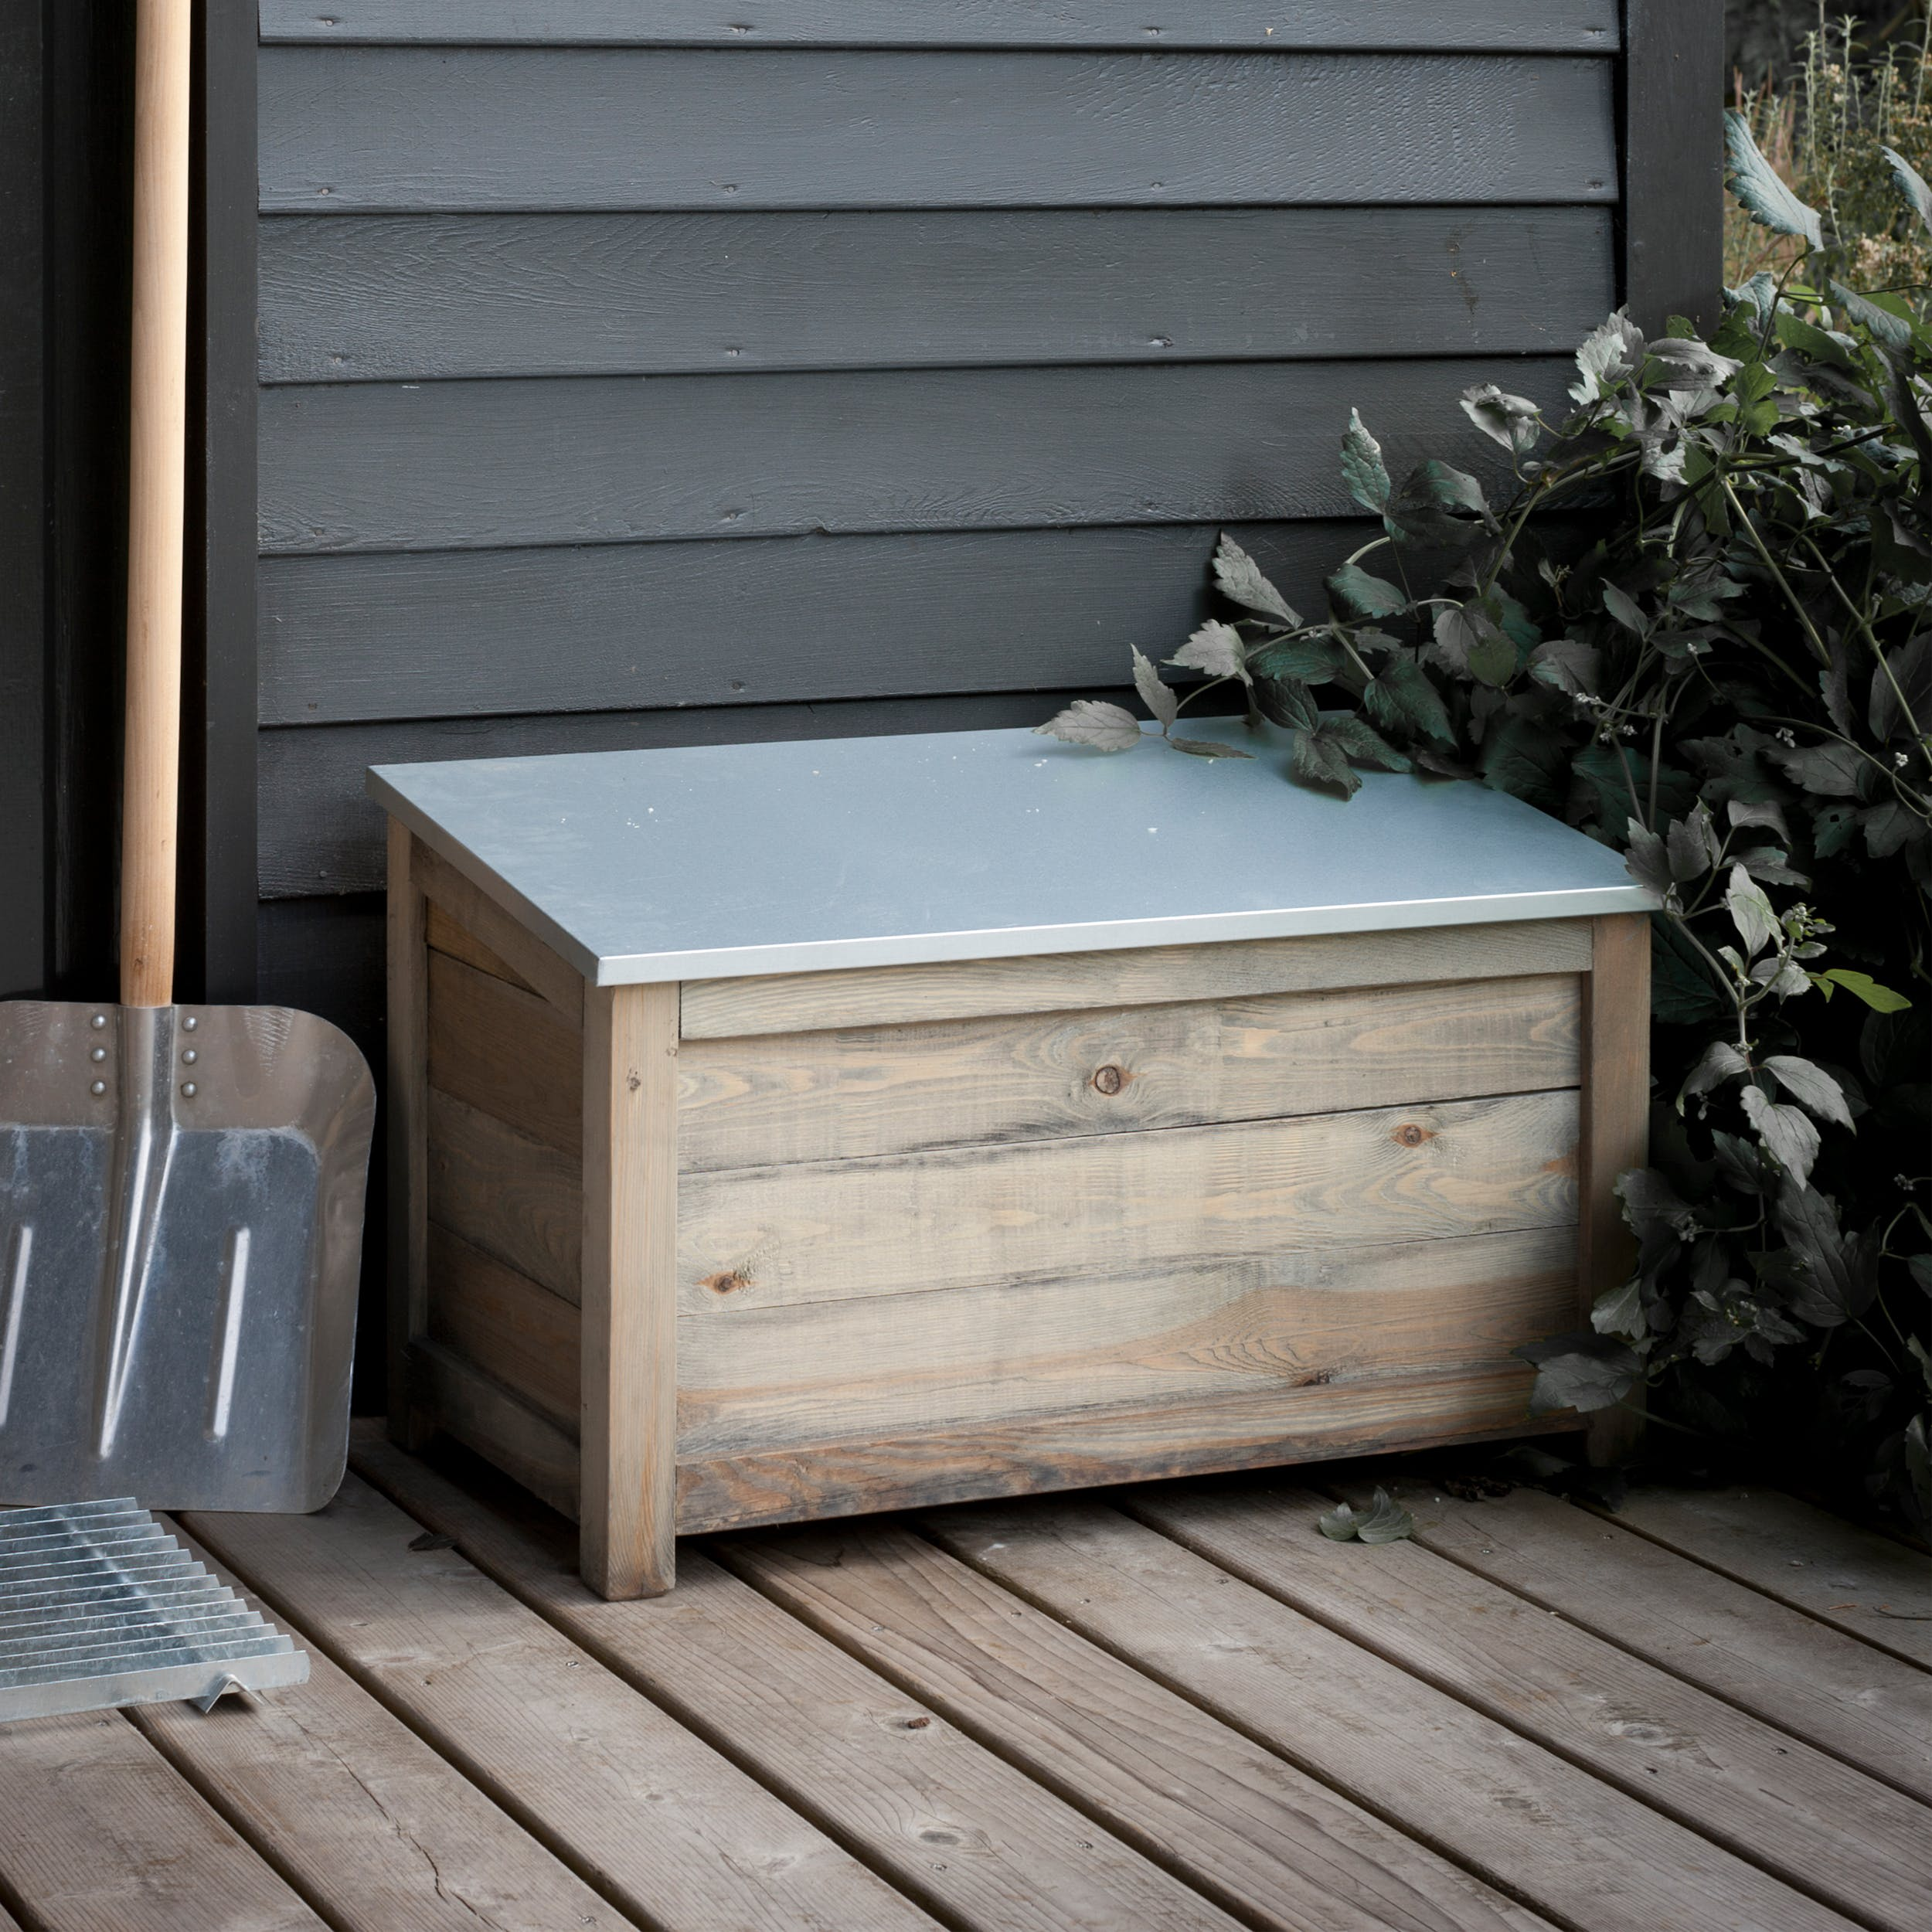 Wooden Outdoor Storage Box In Small Or